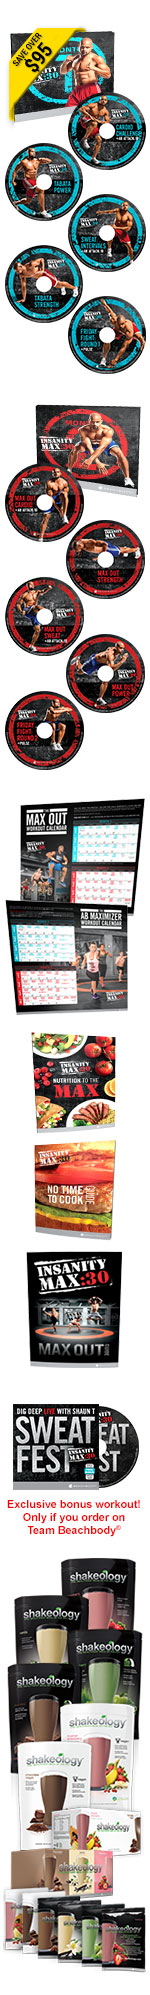 Insanity Max 30 Contents